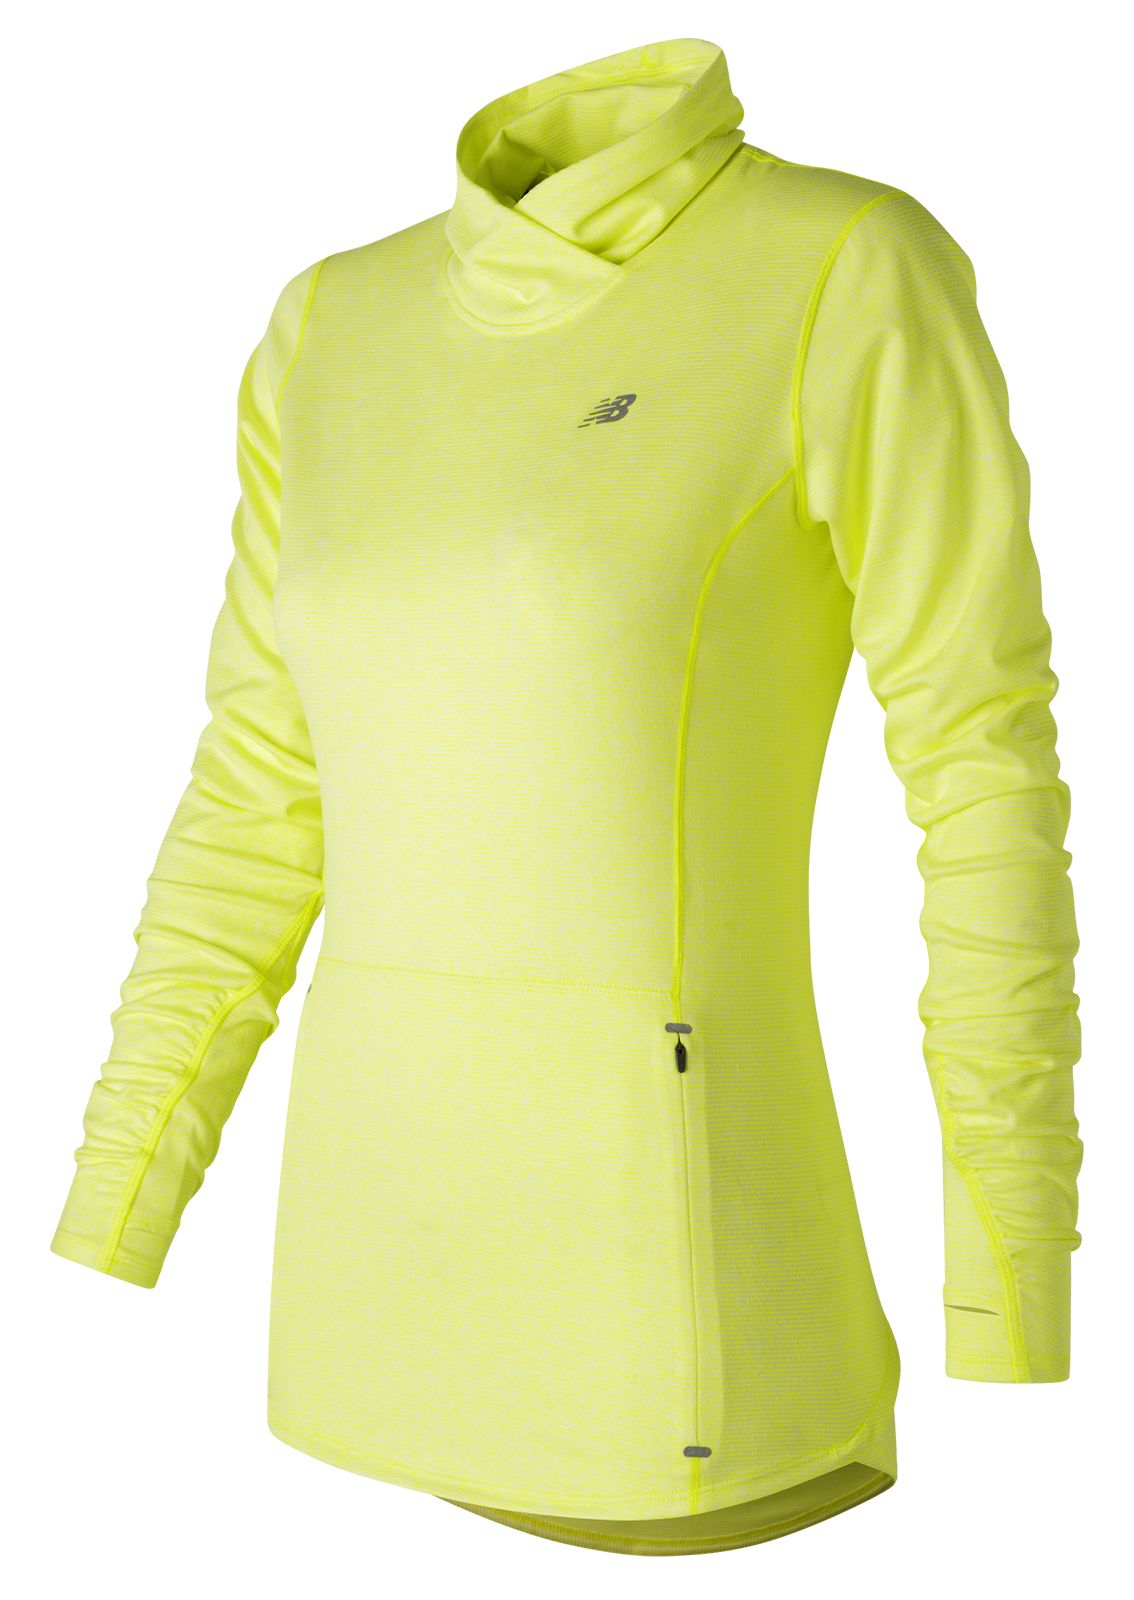 New Balance : Beacon Pullover : Women's Apparel : WT63215FFH